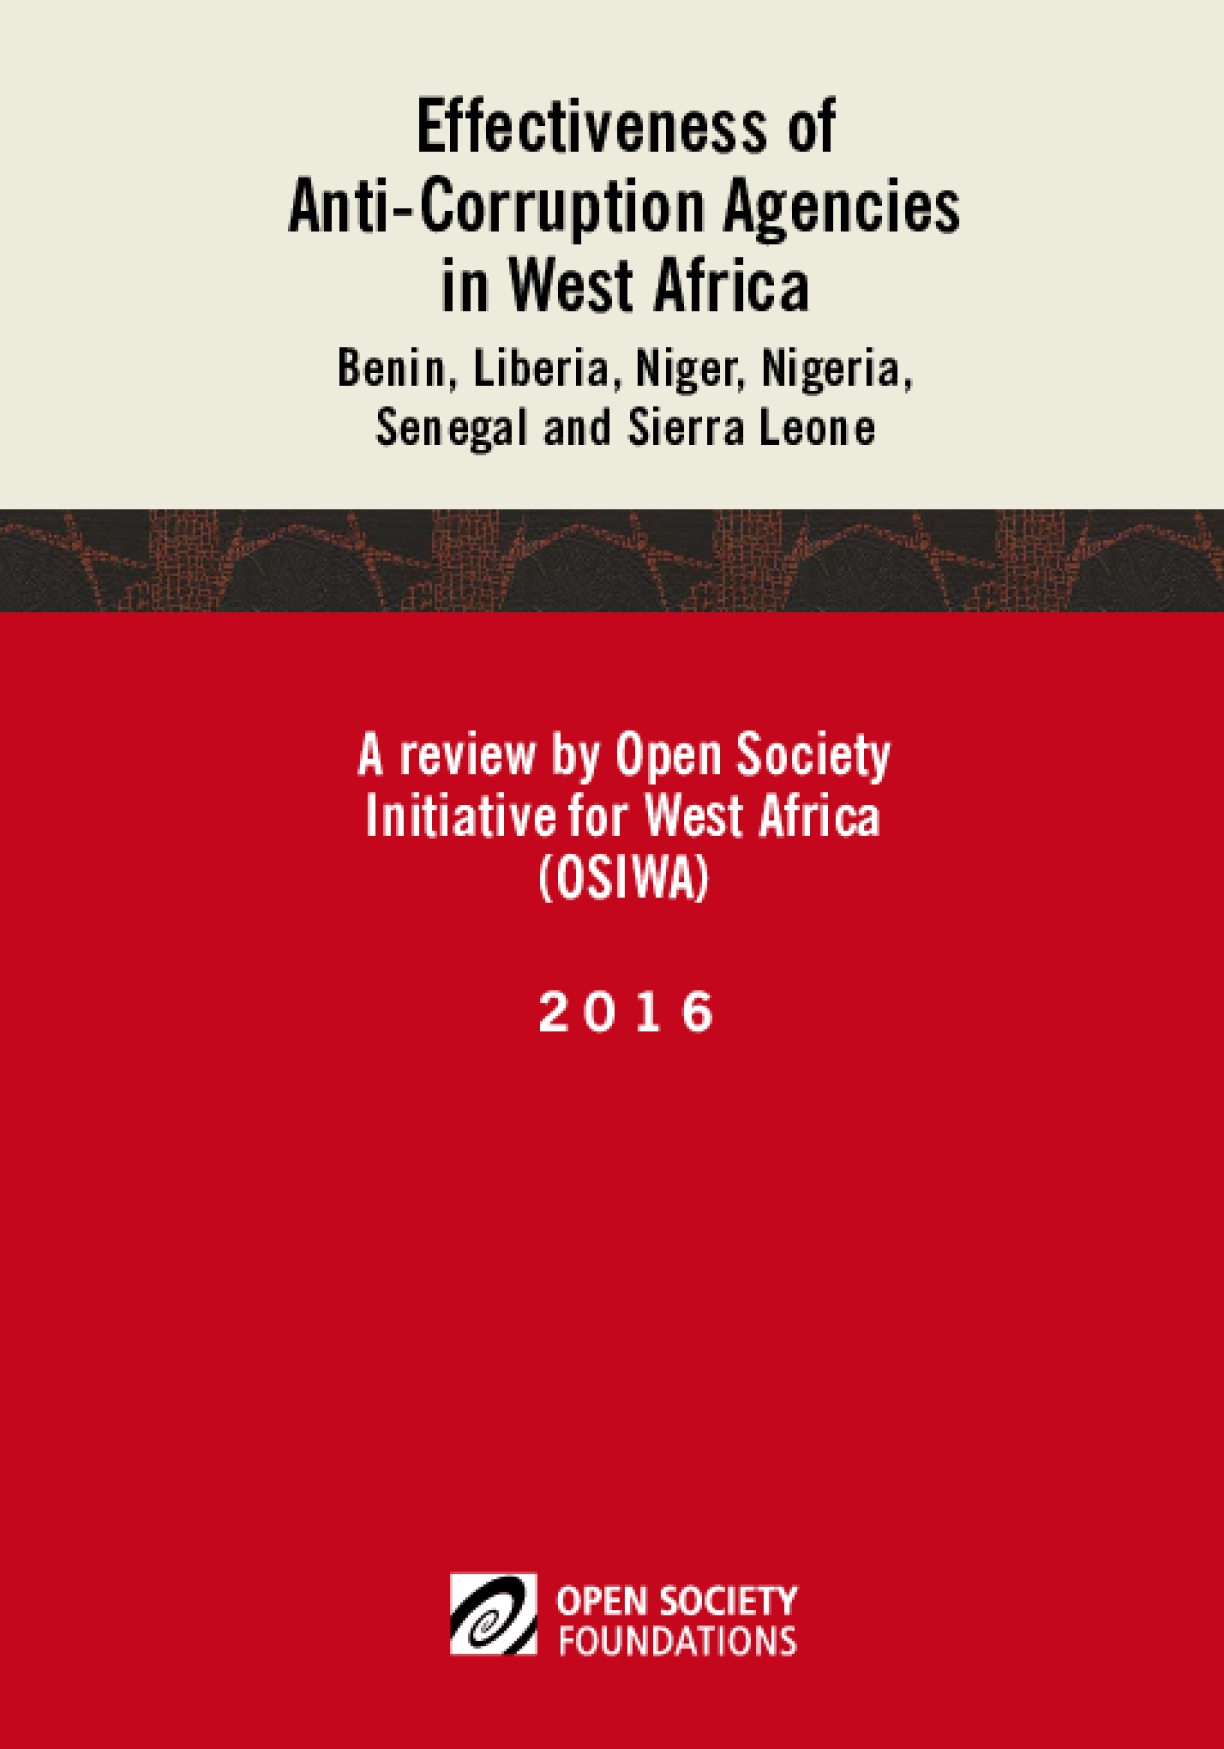 Effectiveness of Anticorruption Agencies in West Africa